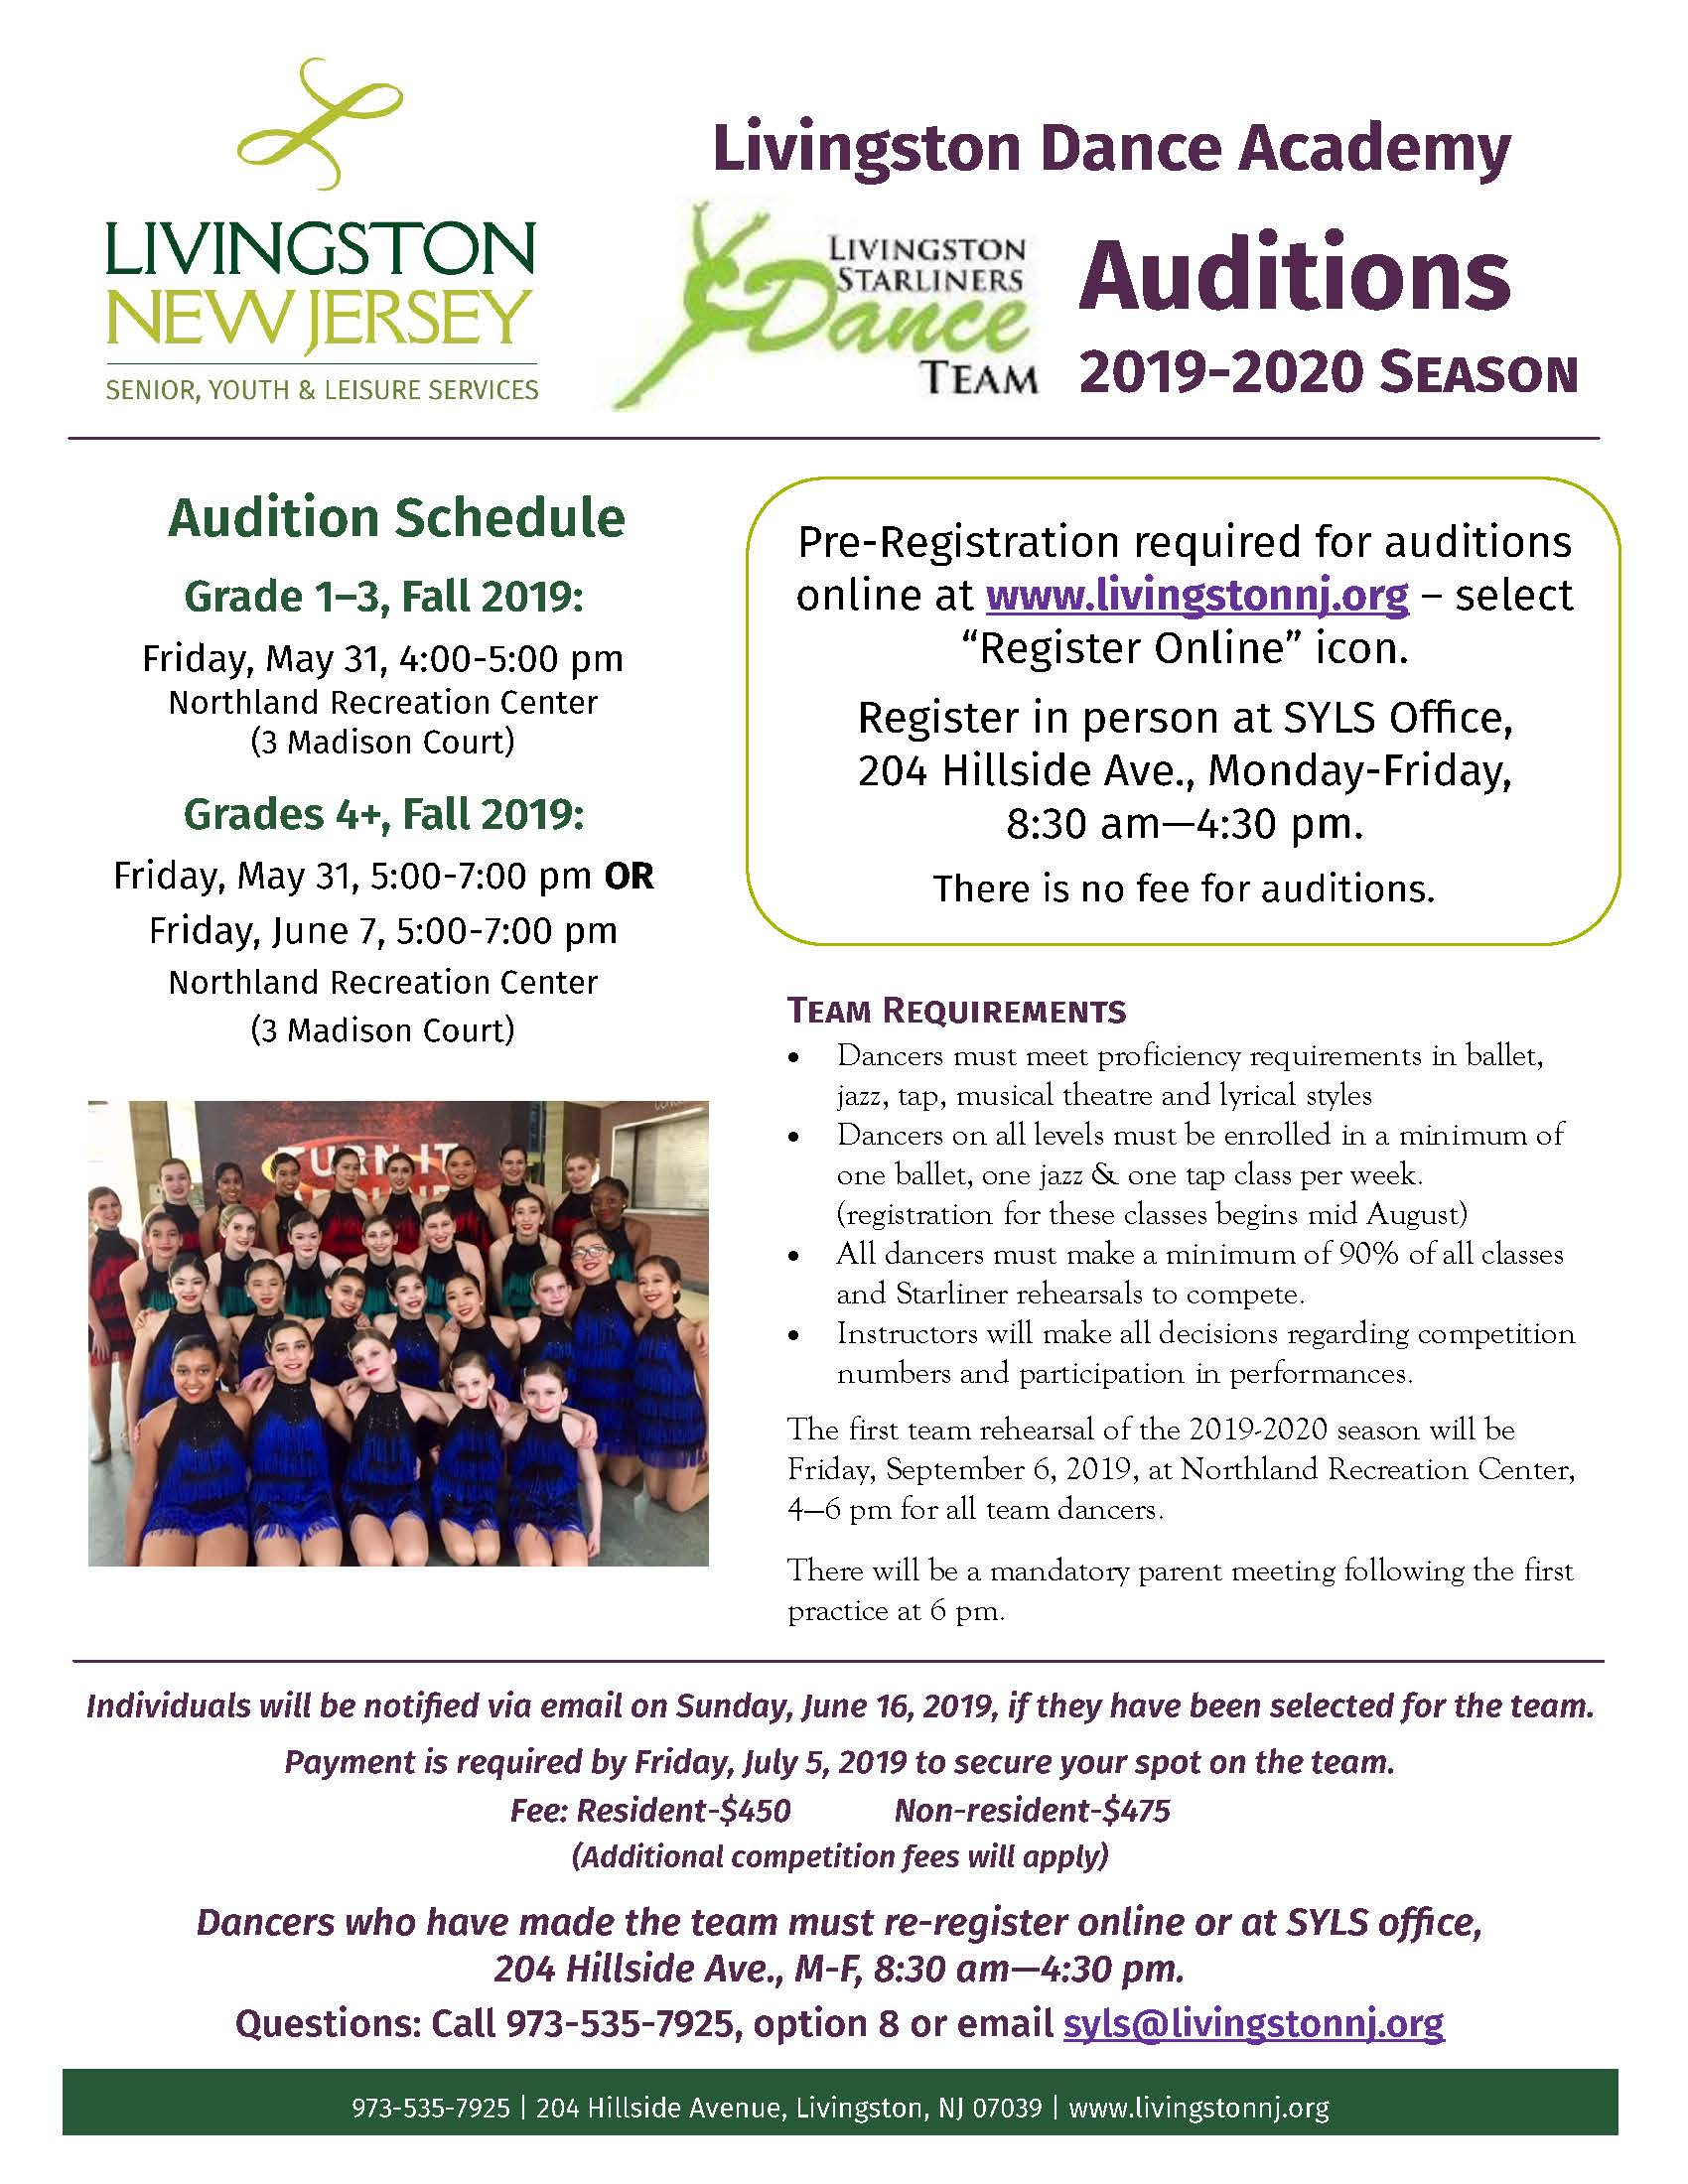 Dance Auditions 2019